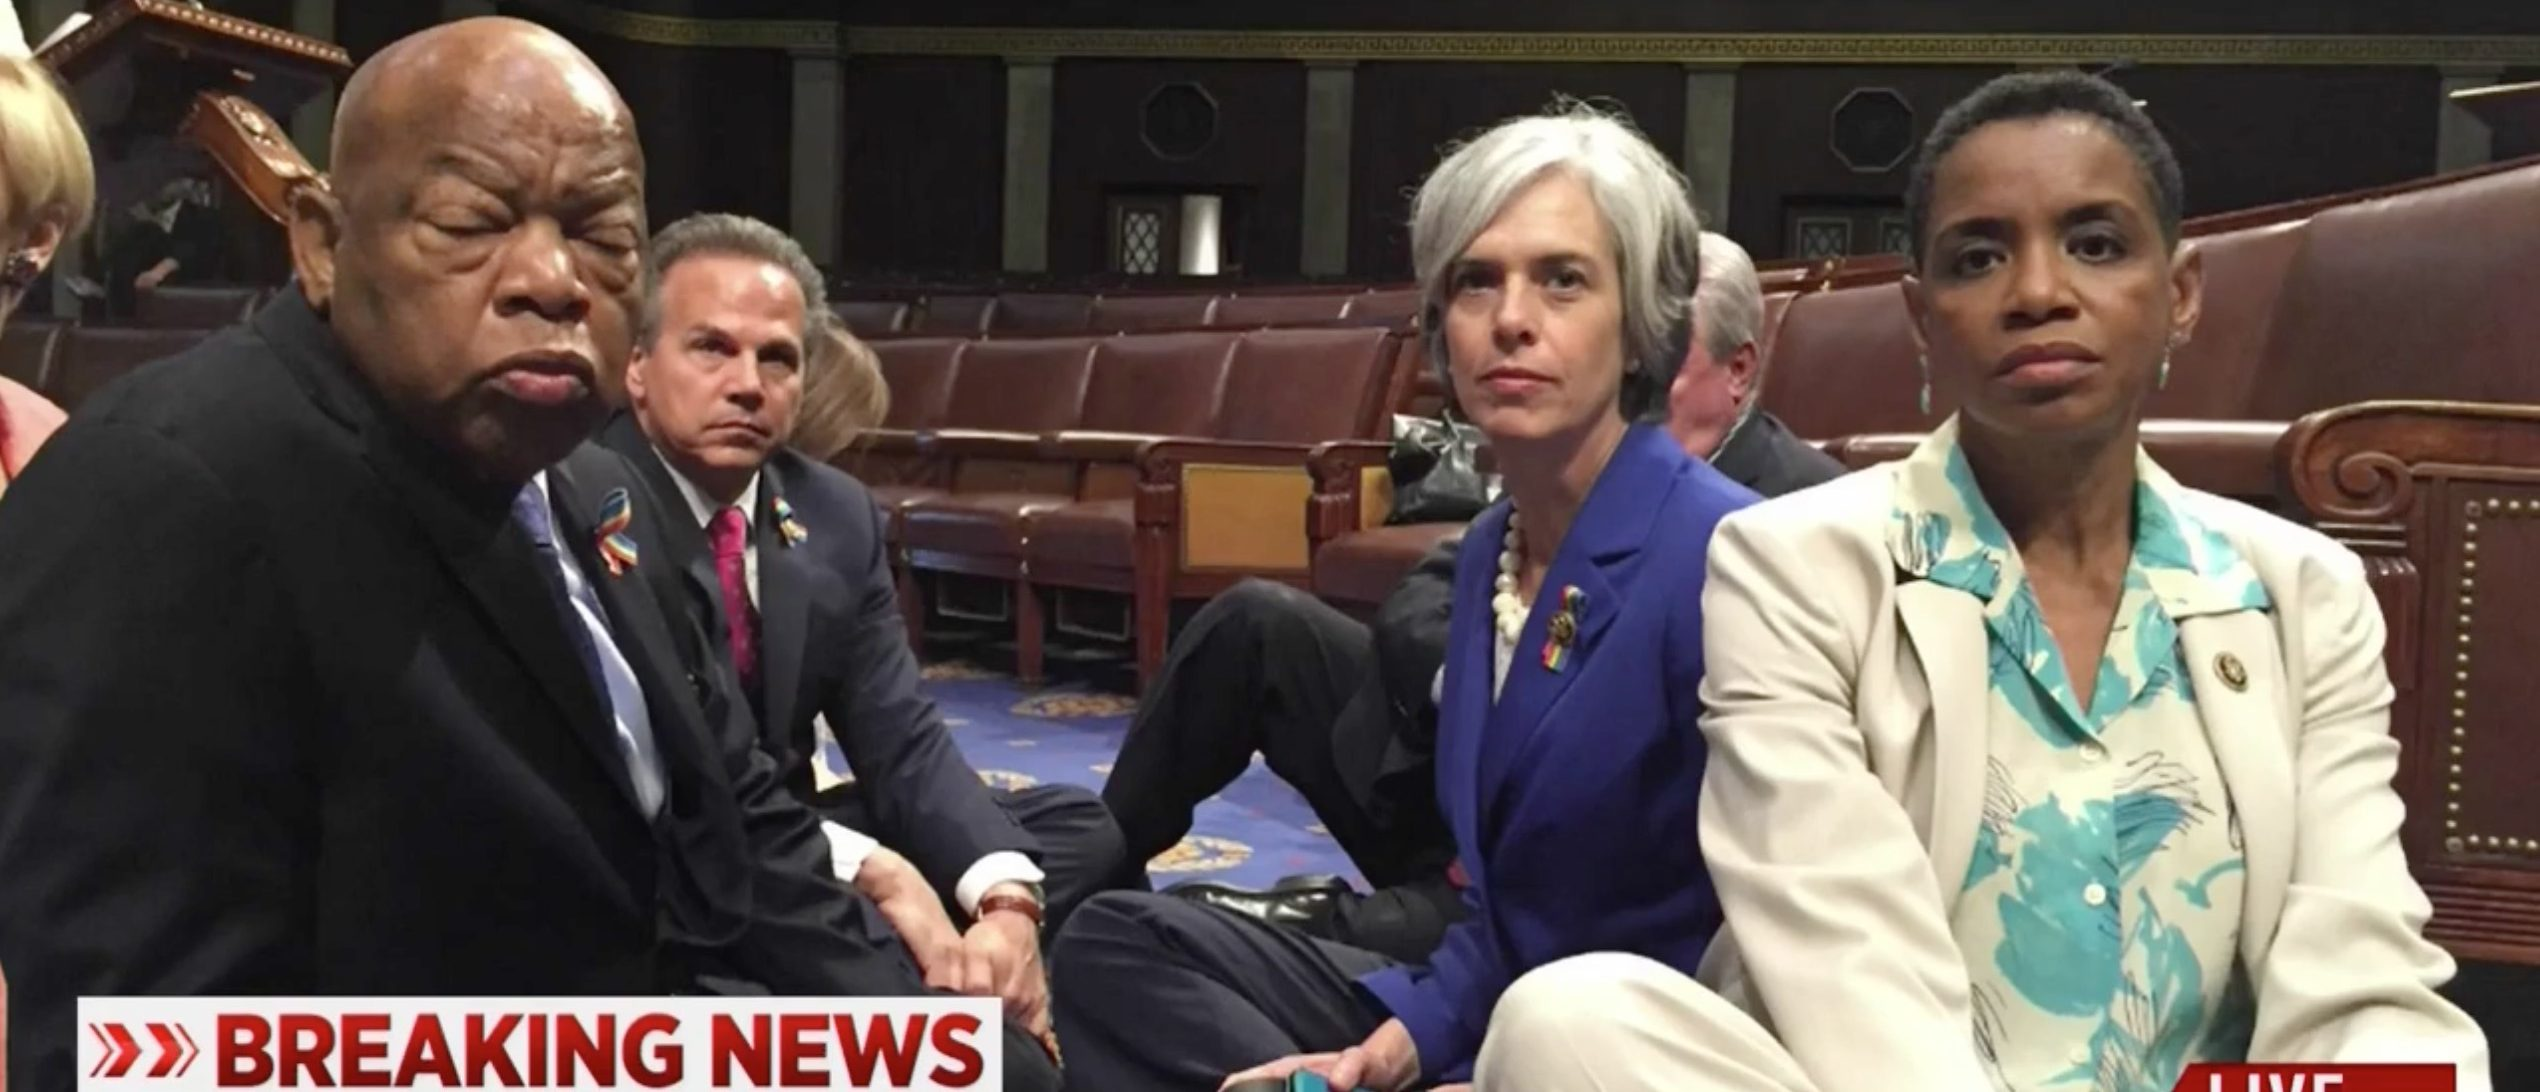 Democrats Sitting On The House Floor, Screen Grab MSNBC, 6-22-2016